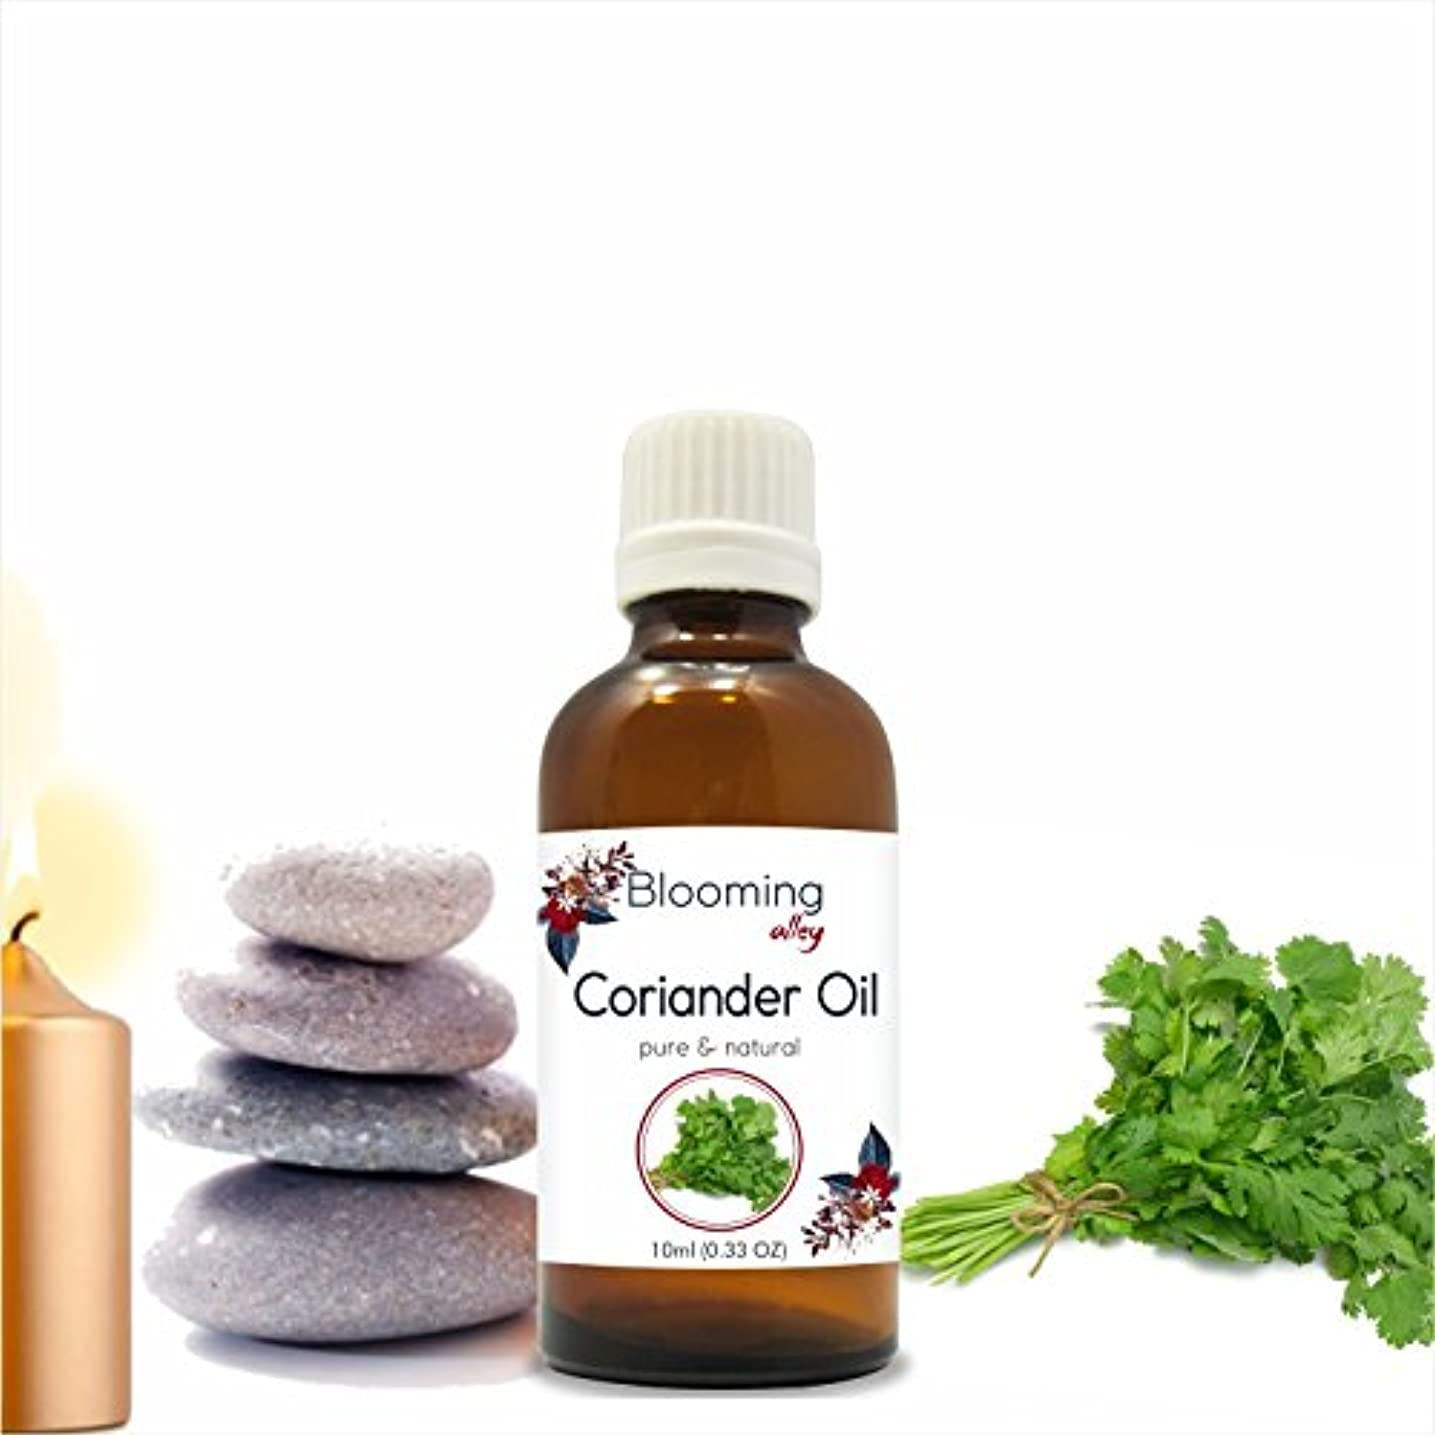 Coriander Oil (Coriandrum Sativum) Essential Oil 10 ml or 0.33 Fl Oz by Blooming Alley